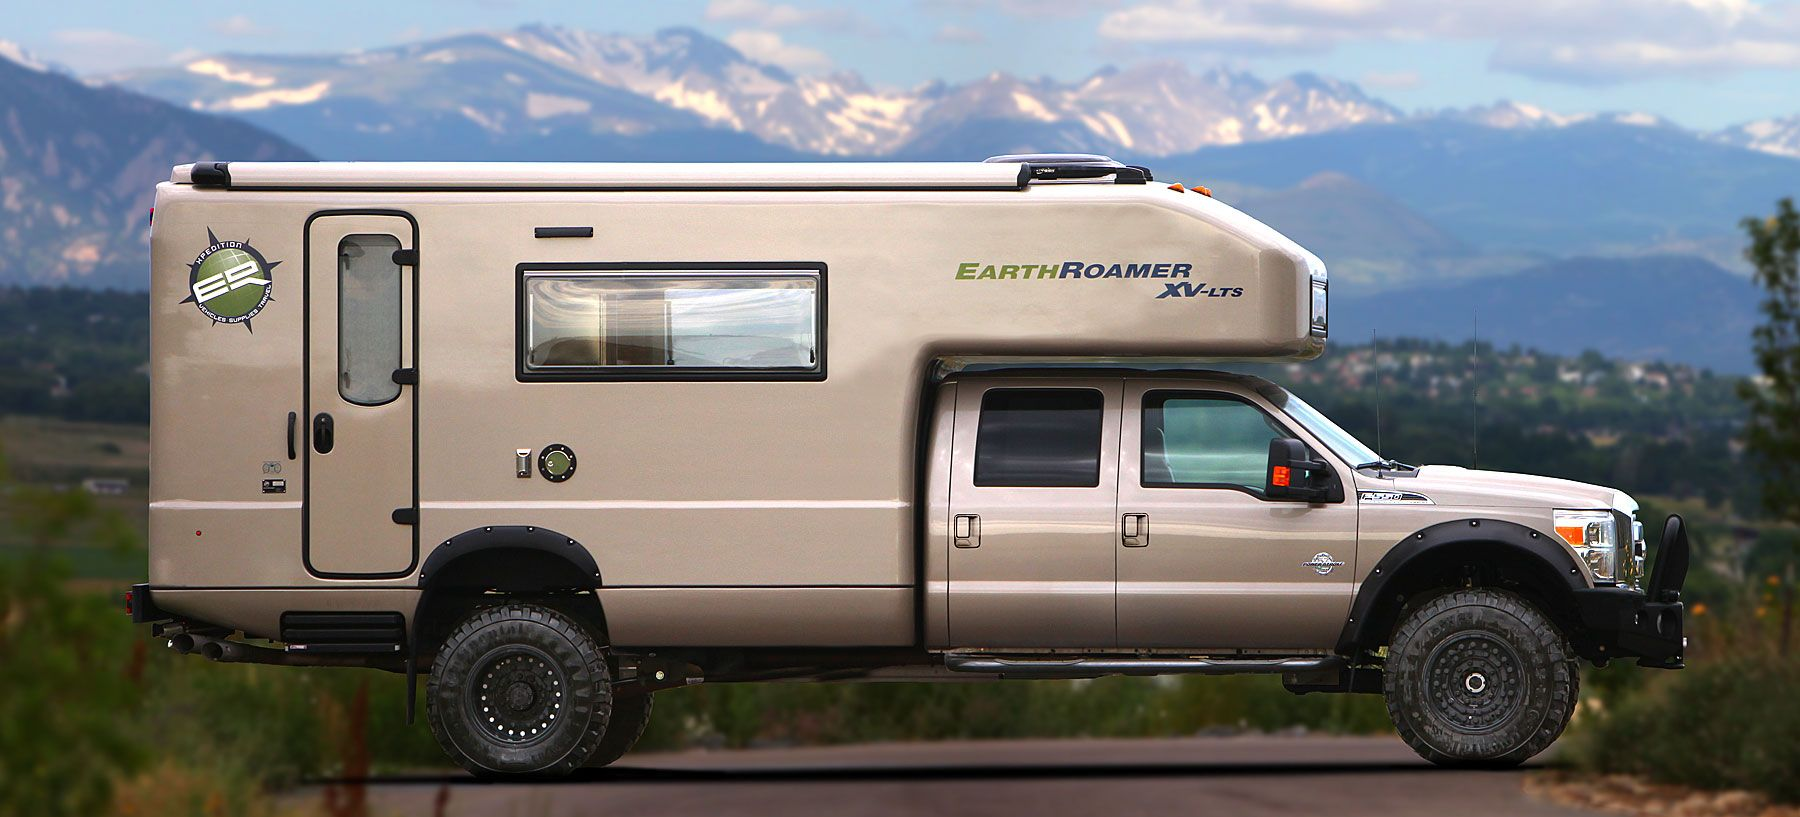 EarthRoamer XVLTS Camper shells